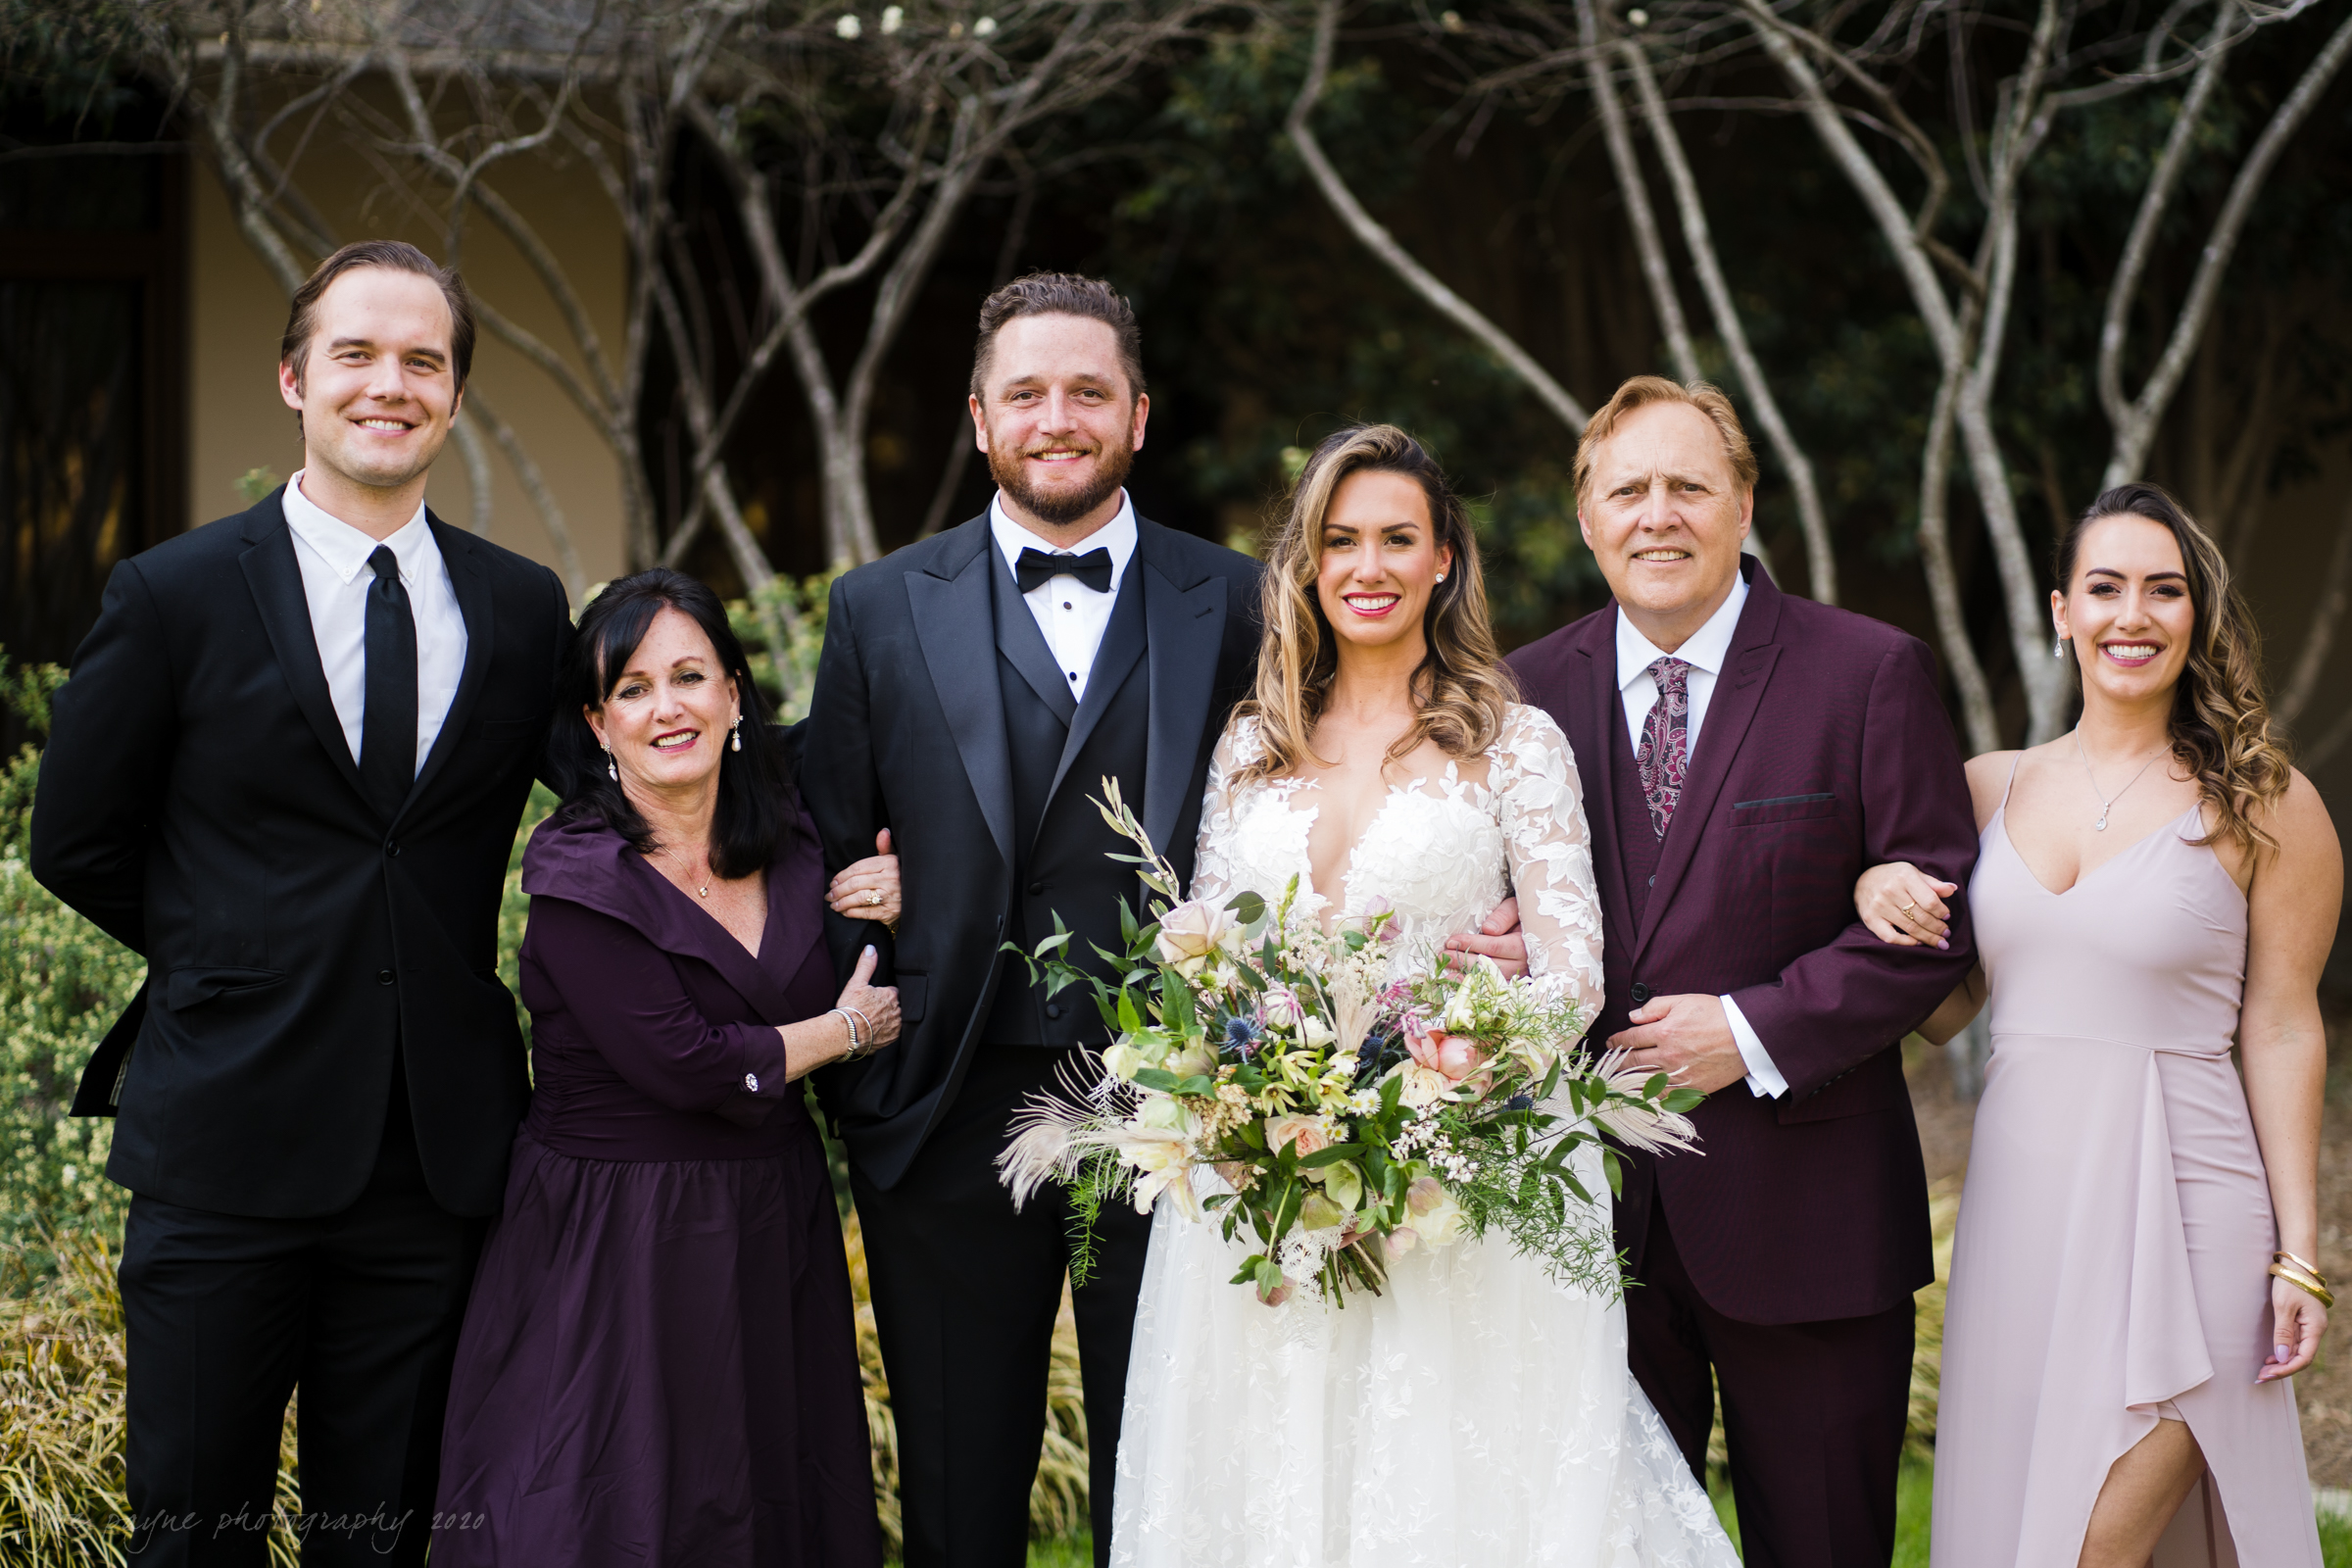 umstead hotel park wedding photography brittany harrison 26